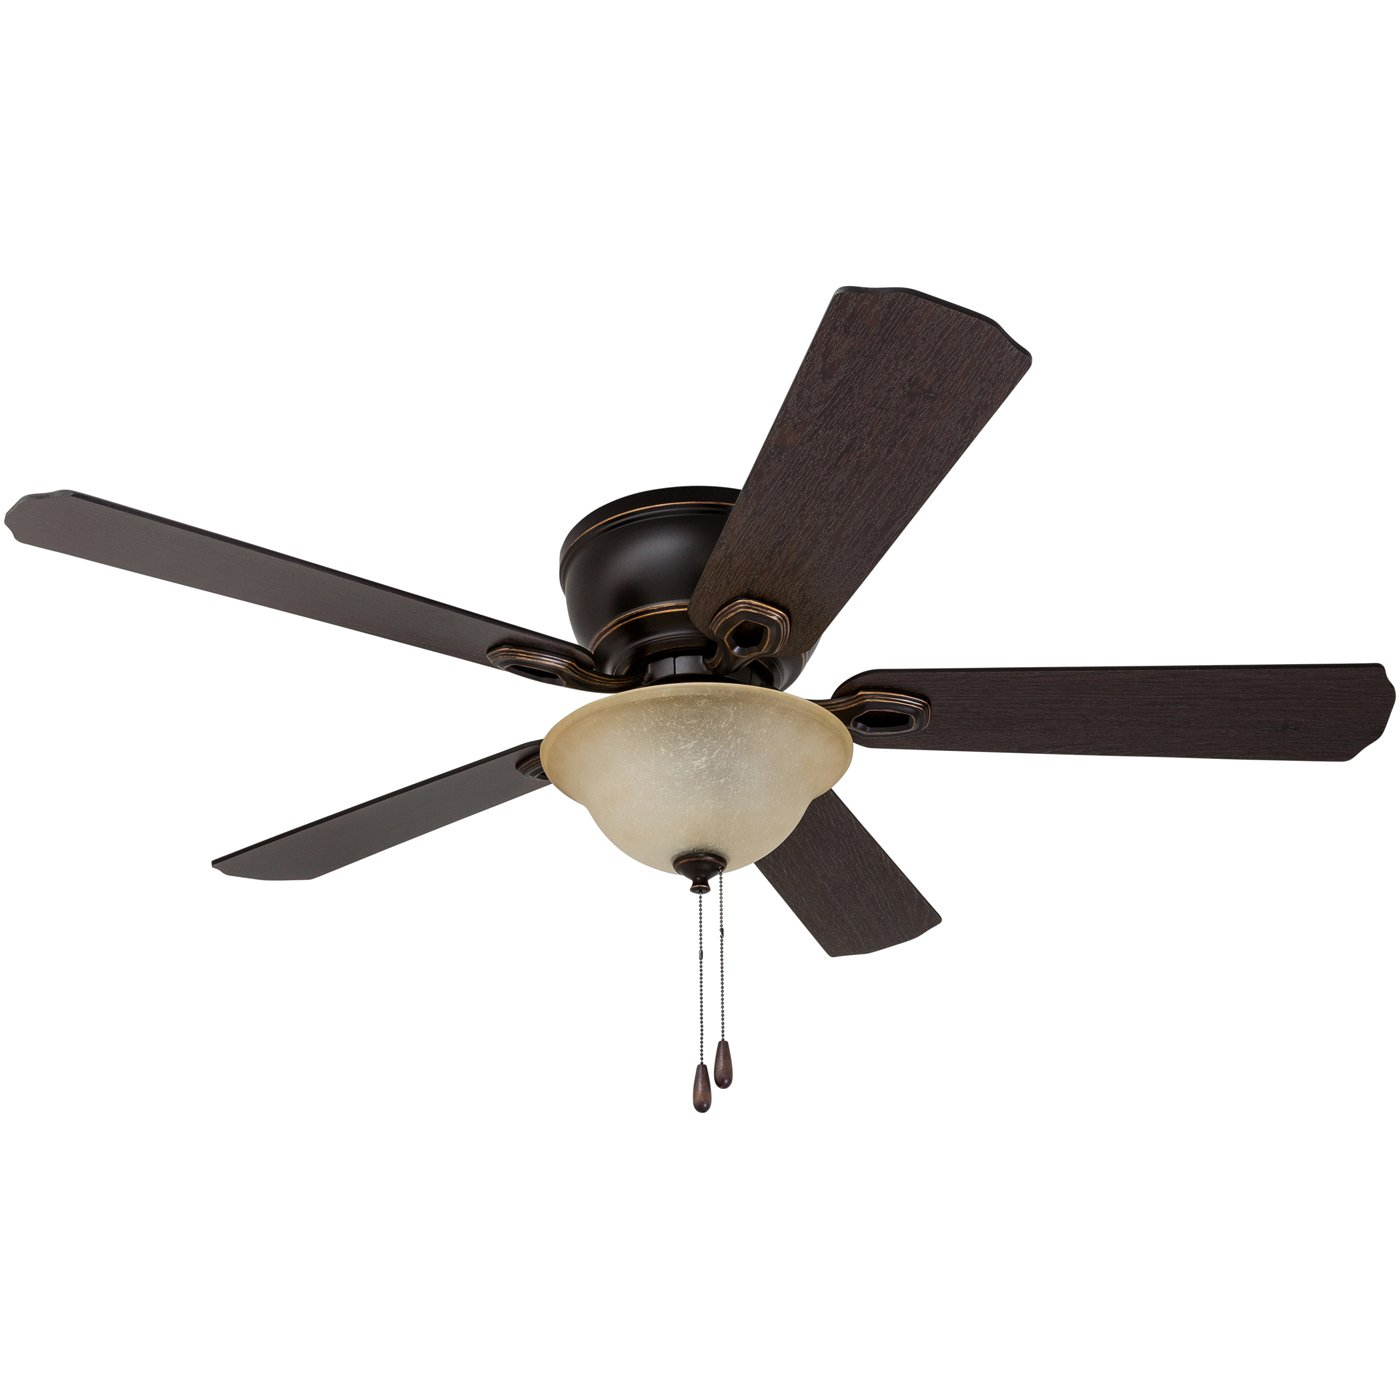 52'' Prominence Home Coors Creek, Hugger Ceiling Fan with Remote Control, Oil-Rubbed Bronze